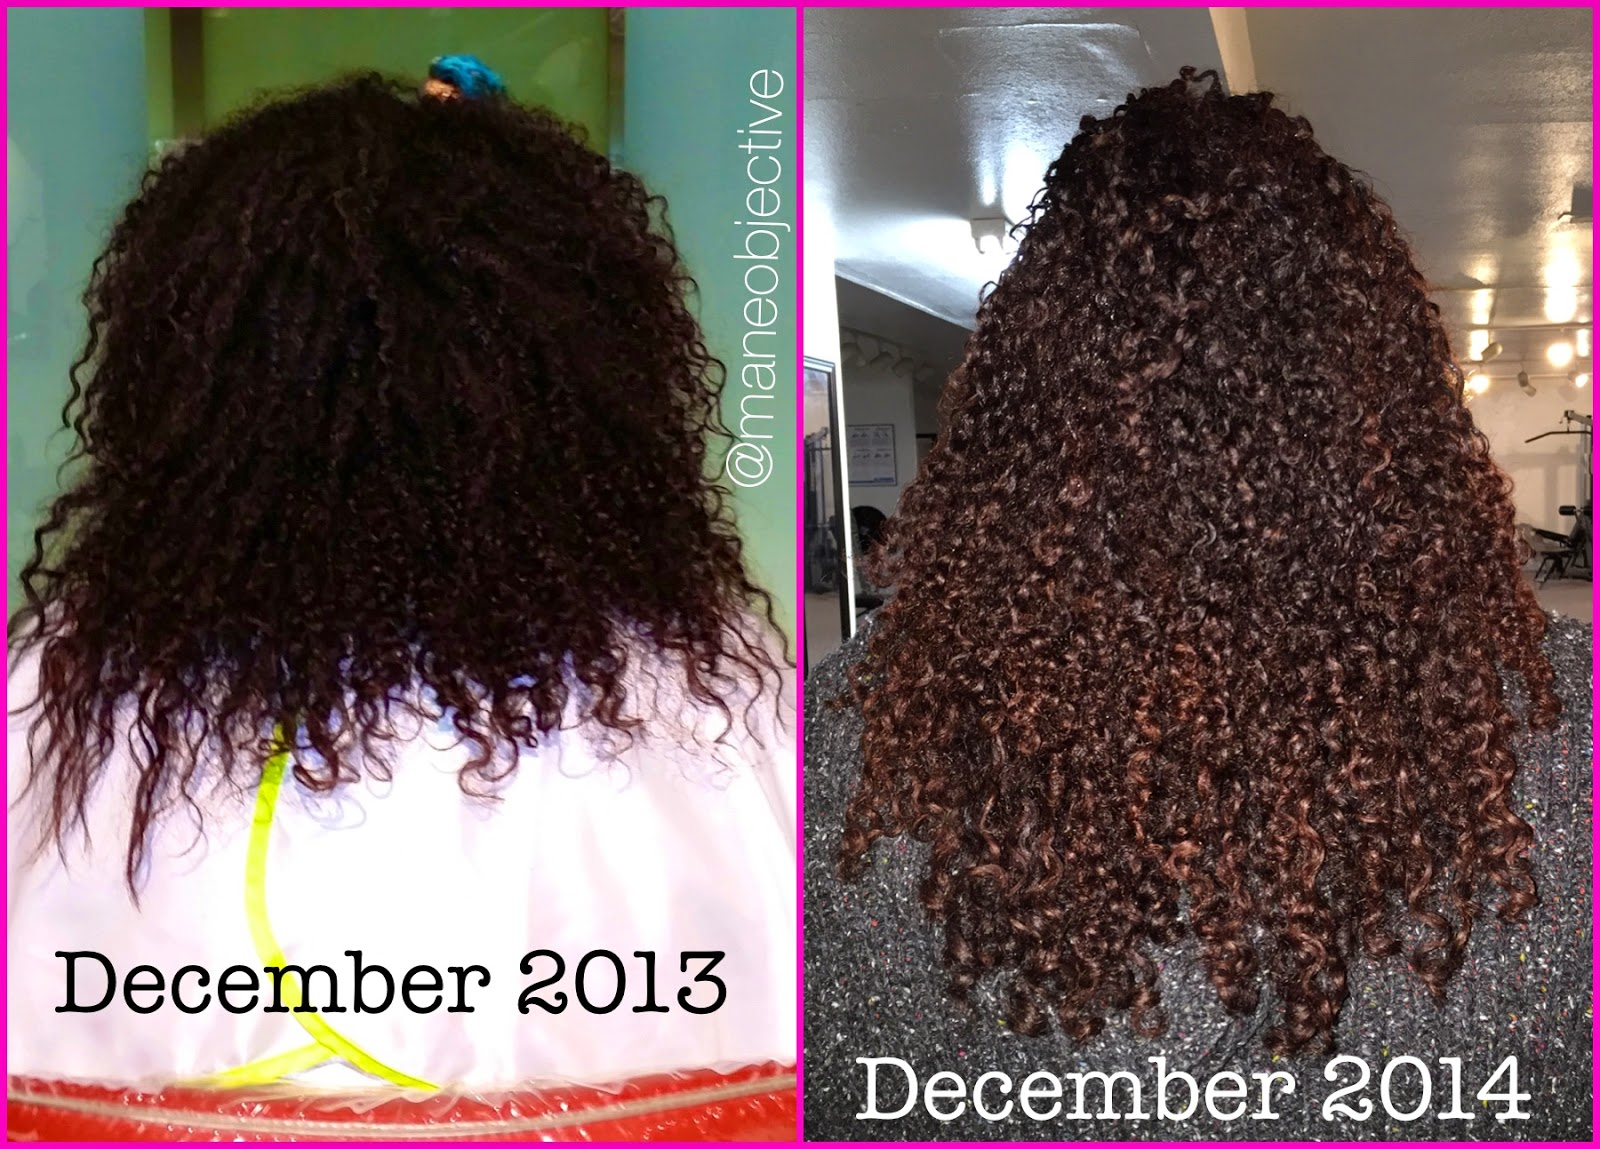 10 Critical Lessons I Learned During My 2-Year Transition to Natural Hair